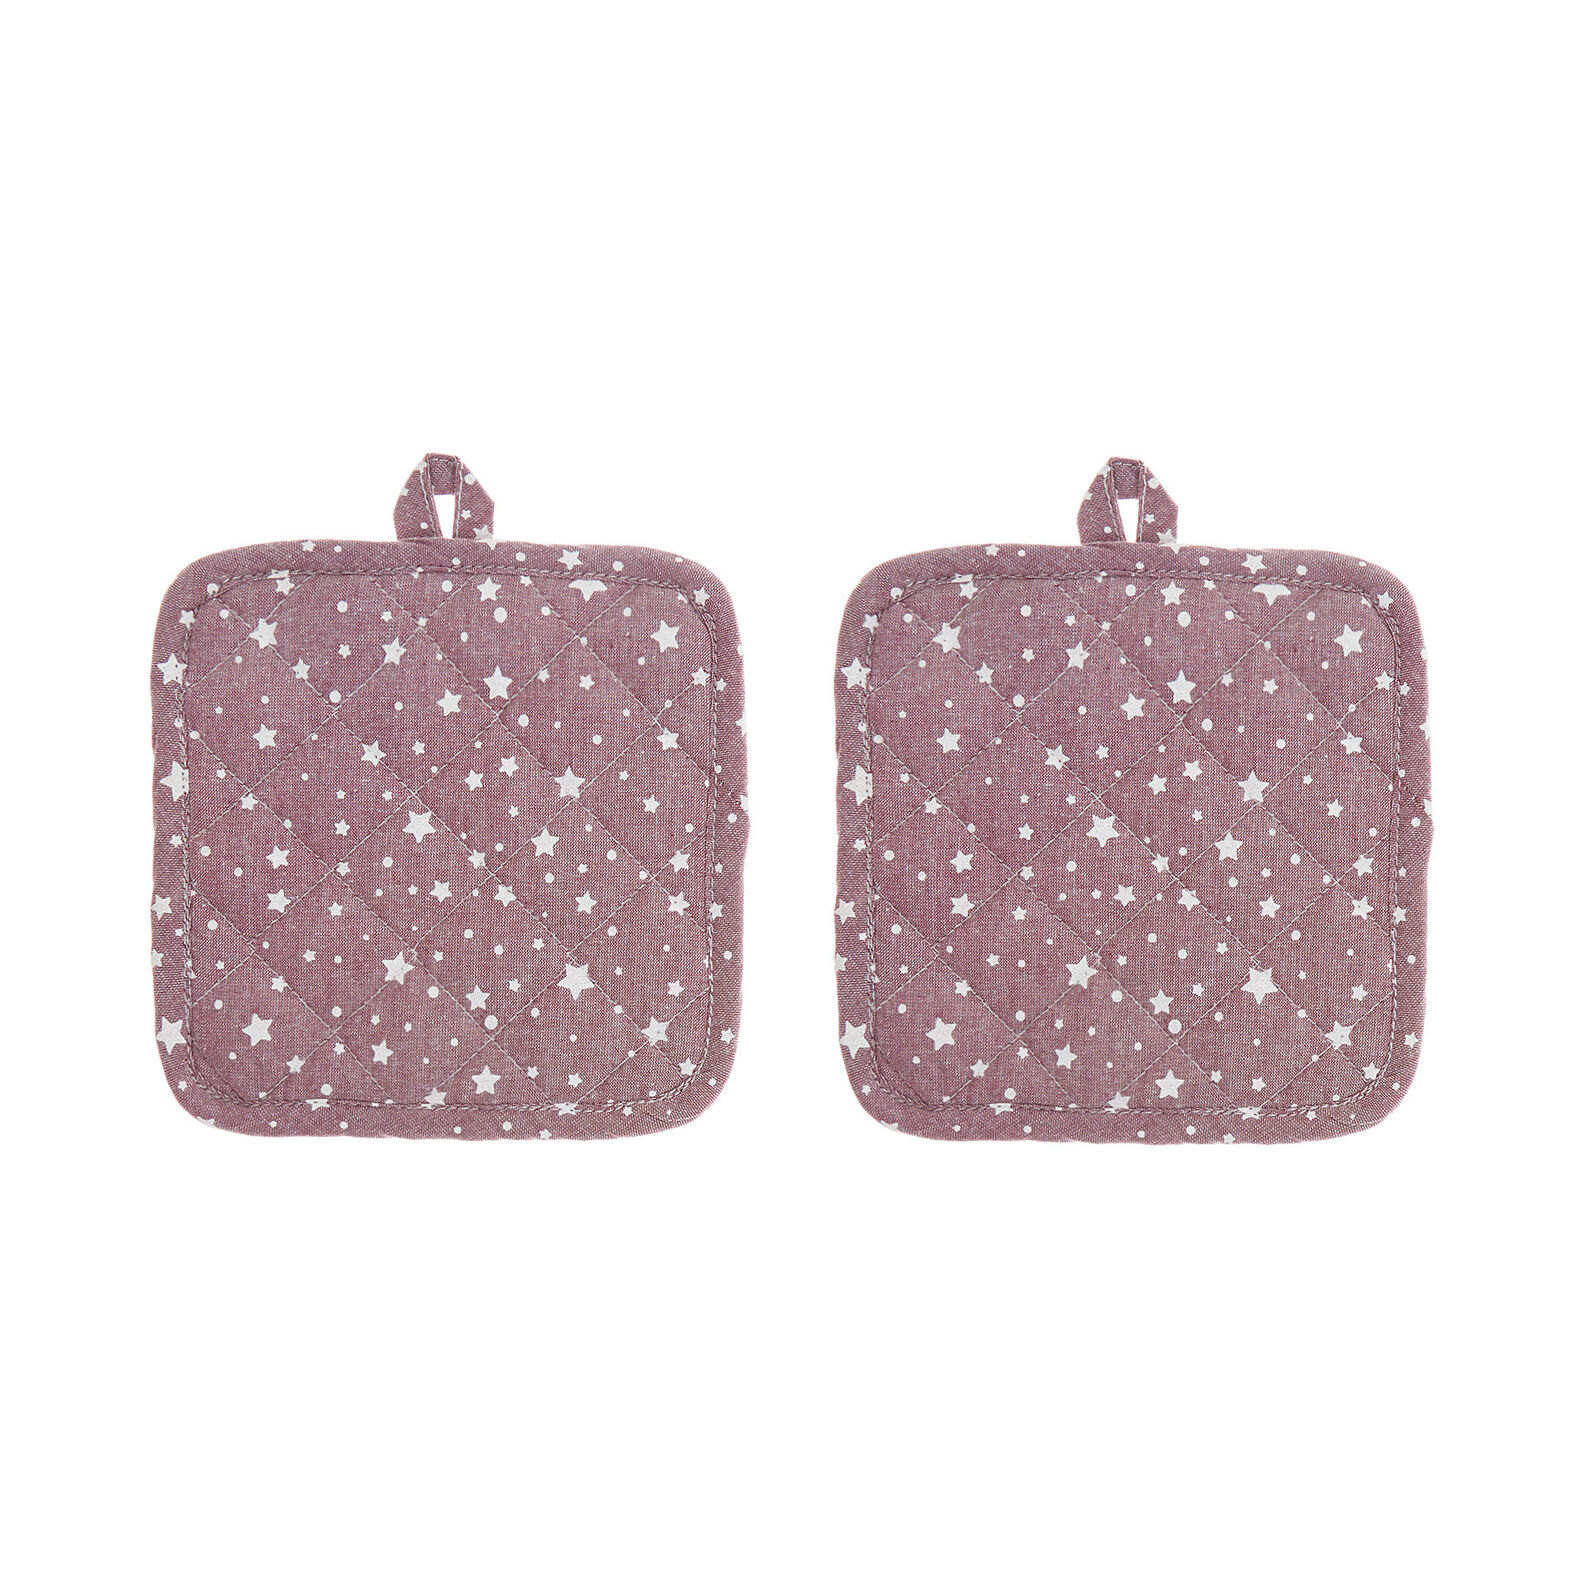 Two-pack pot holders in 100% cotton with stars print